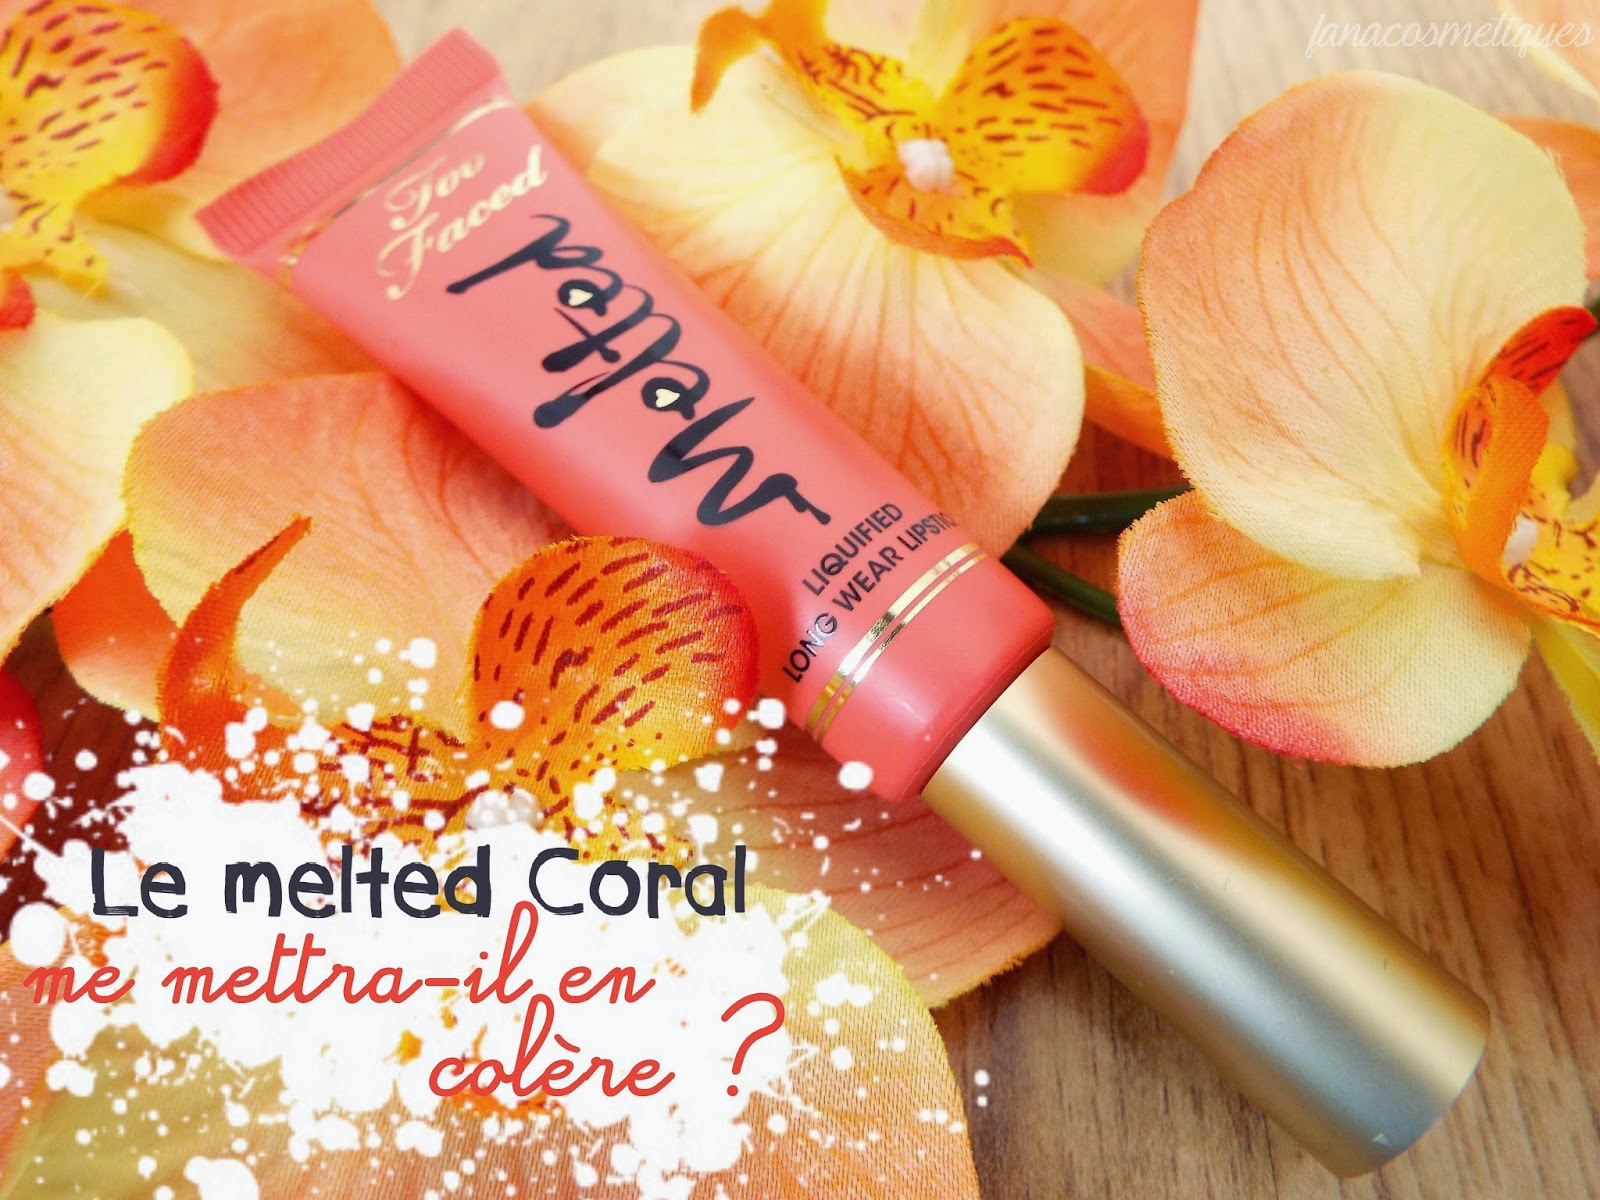 Le Melted Coral de Too faced me mettra-il en colère ?